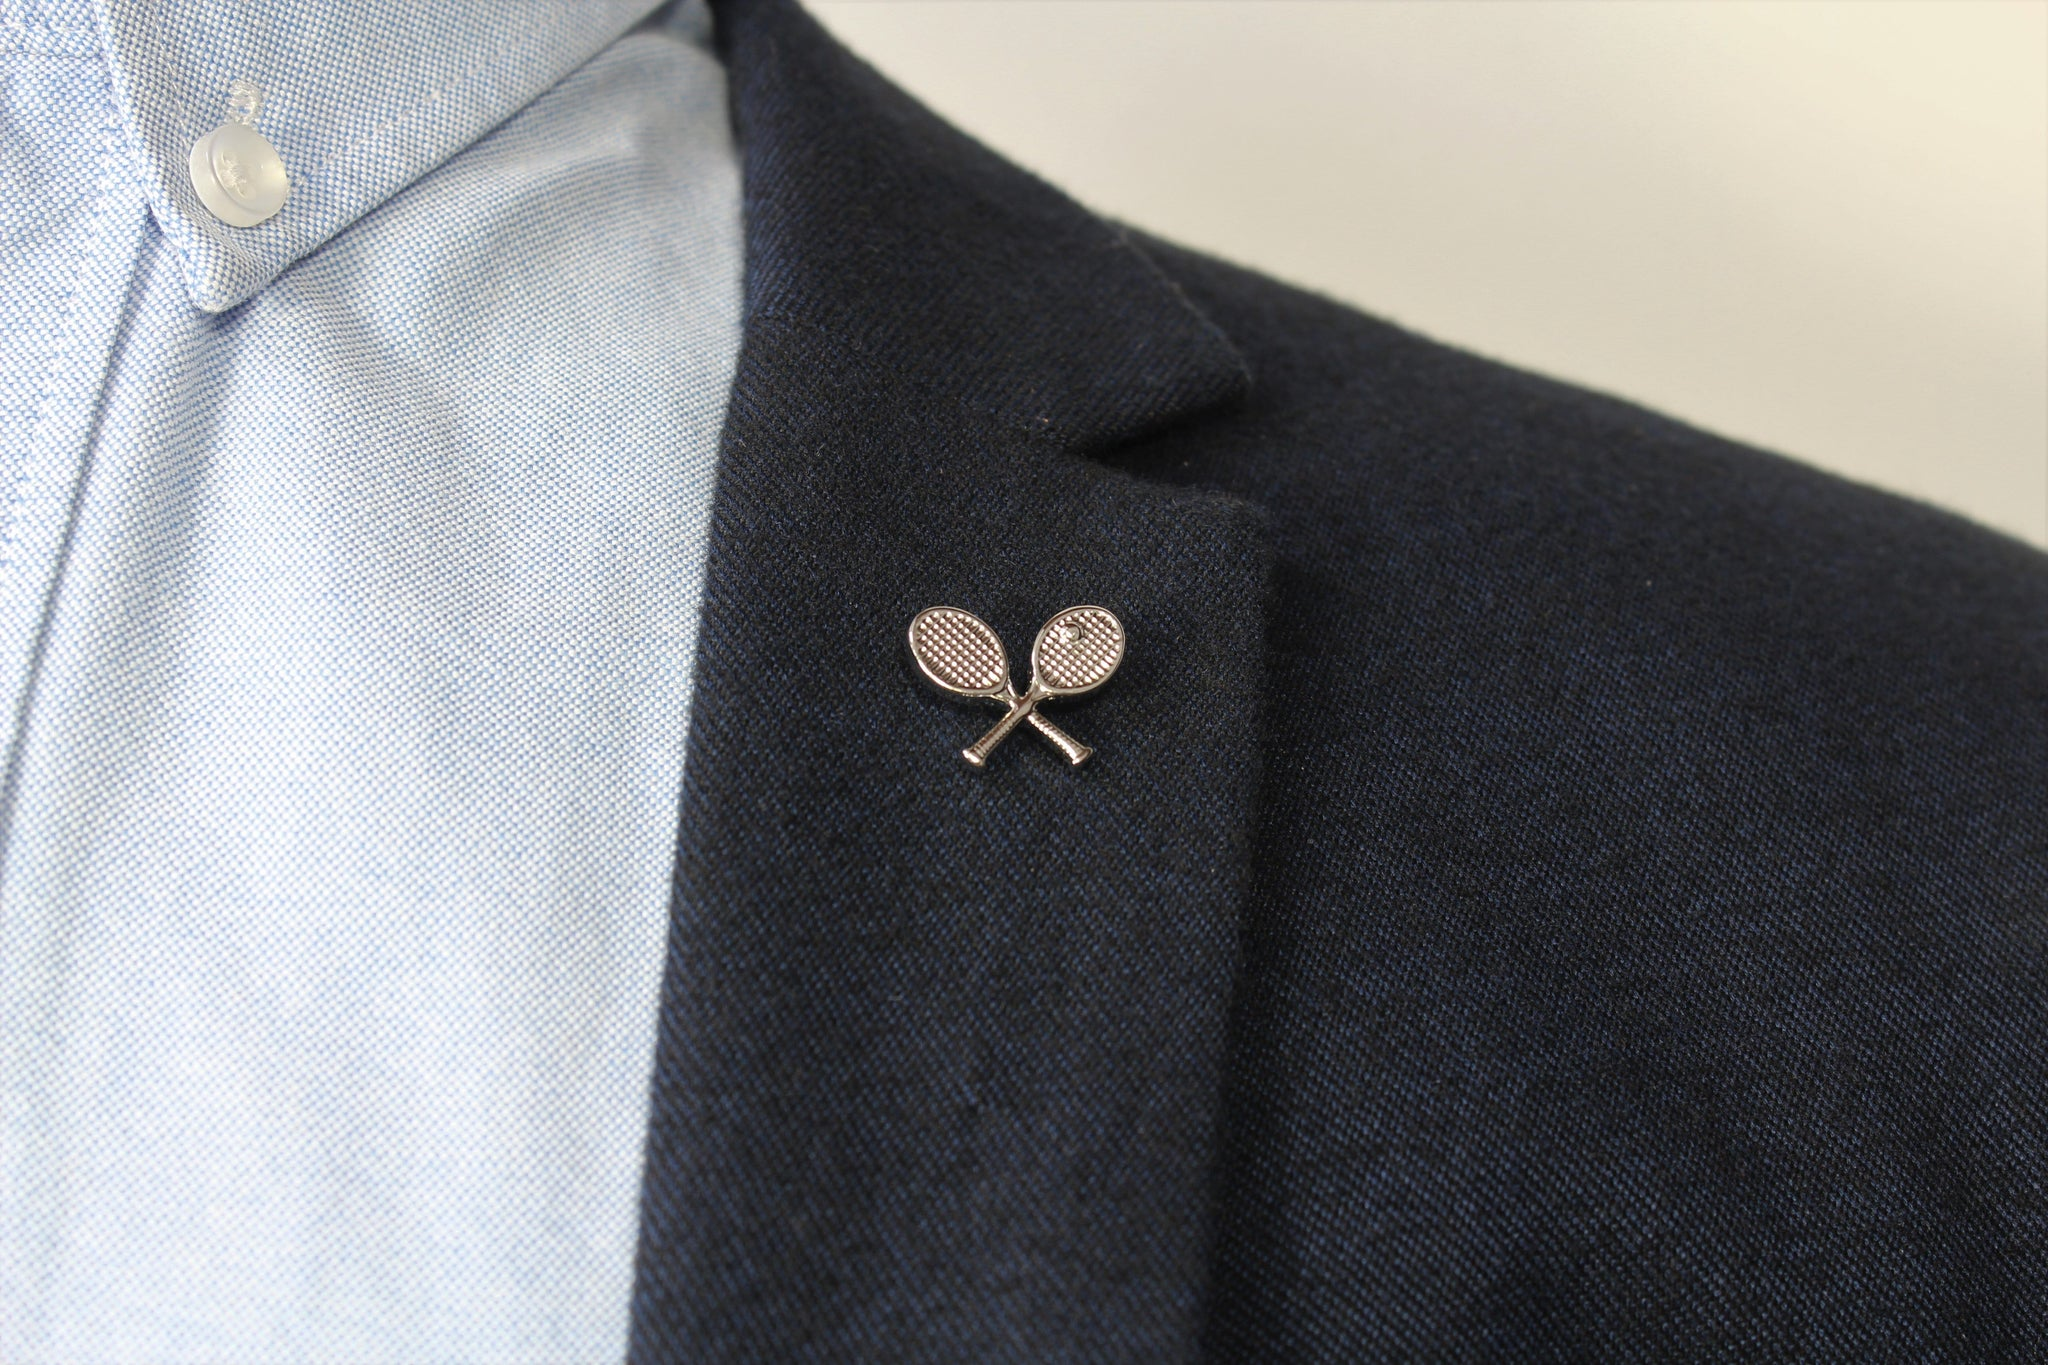 Tennis Racquets Lapel Pin on blazer - Stolen Riches